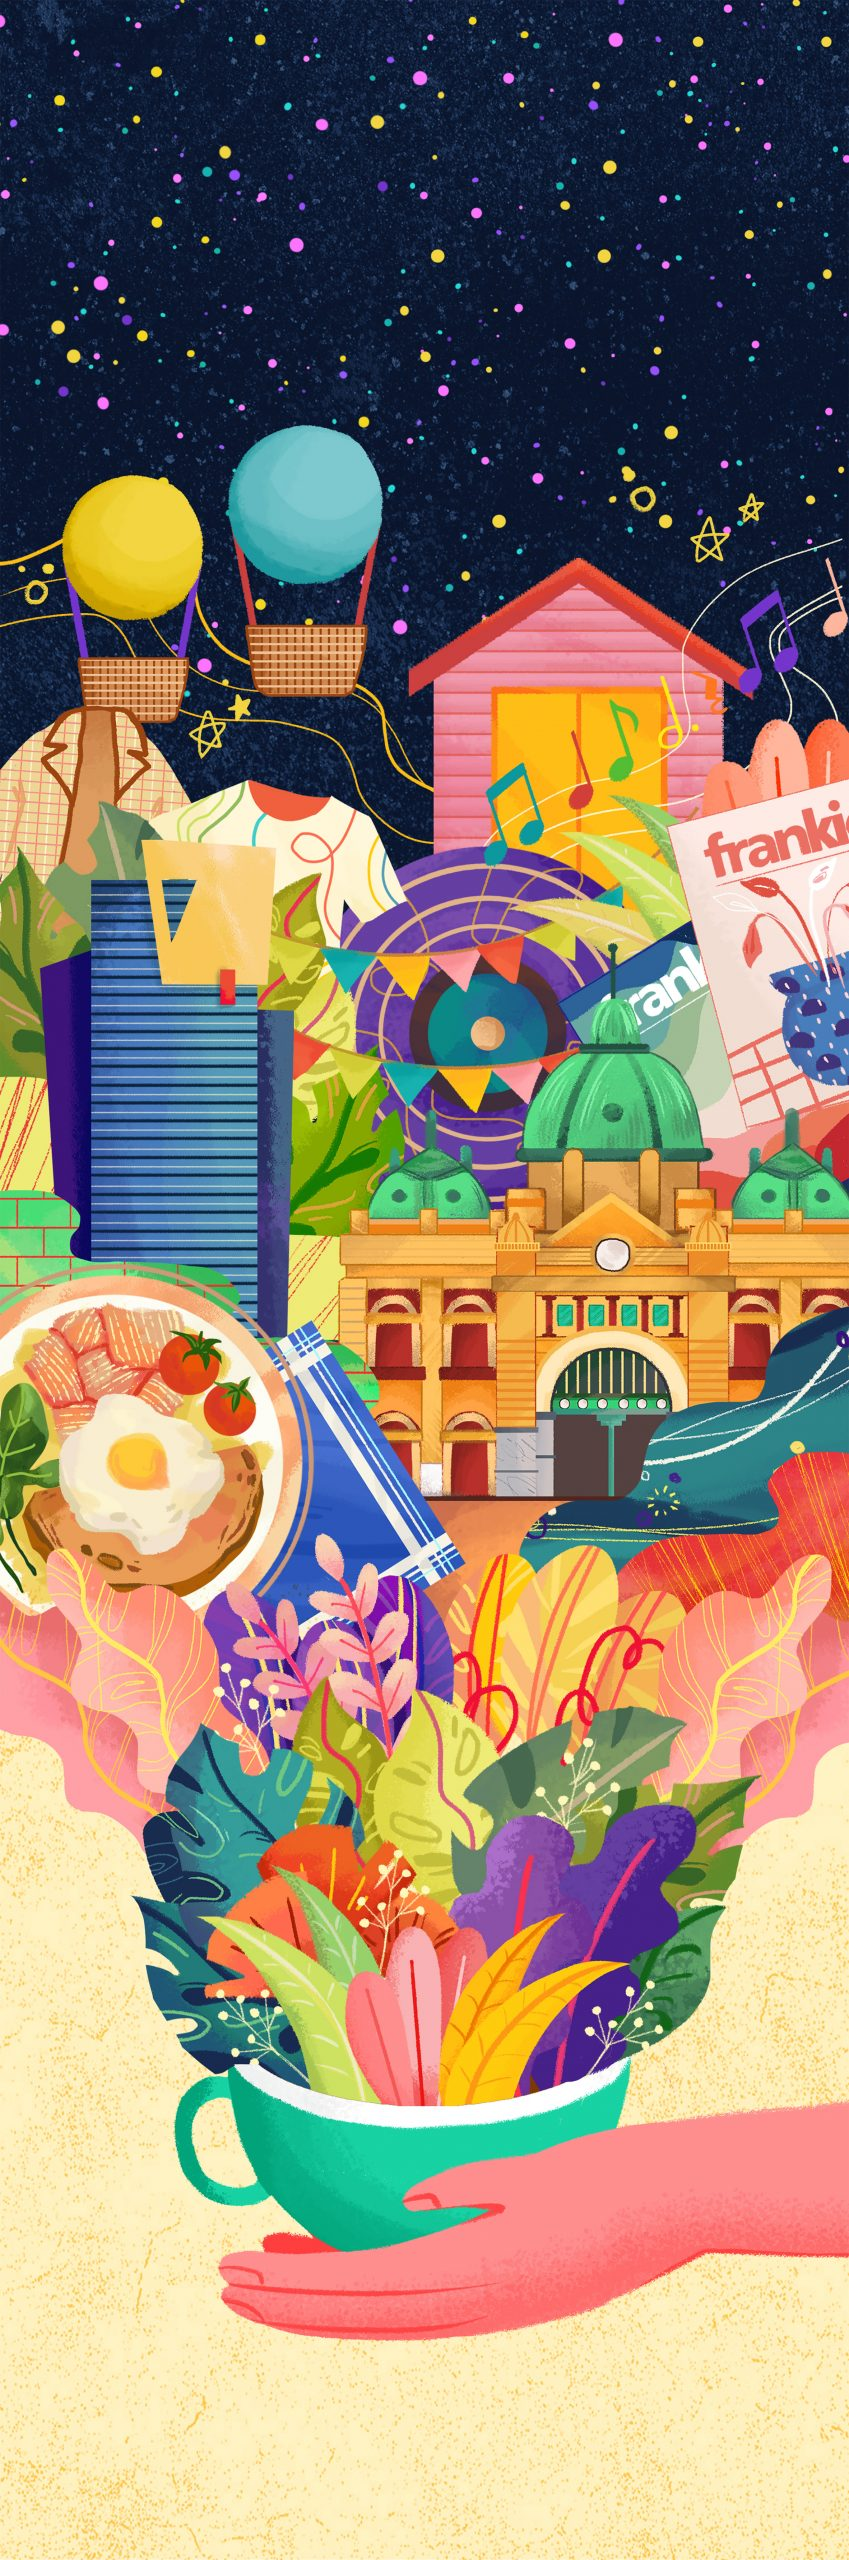 Swinburne School of Design projects span animation, UX and urban design